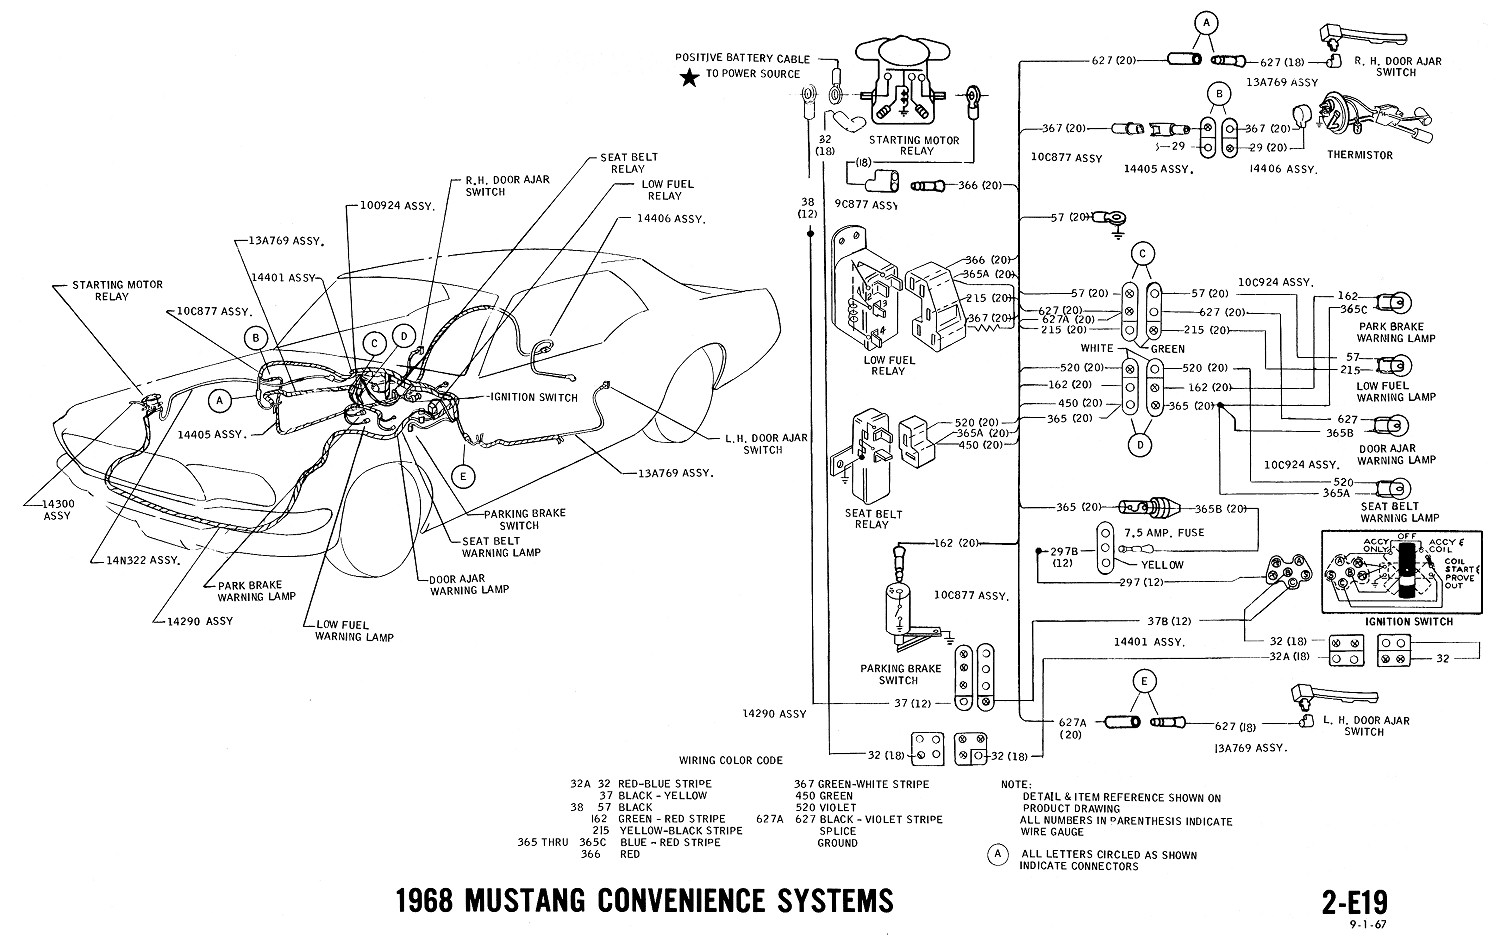 E19 1968 mustang wiring diagrams evolving software 67 cougar turn signal wiring diagram at gsmx.co